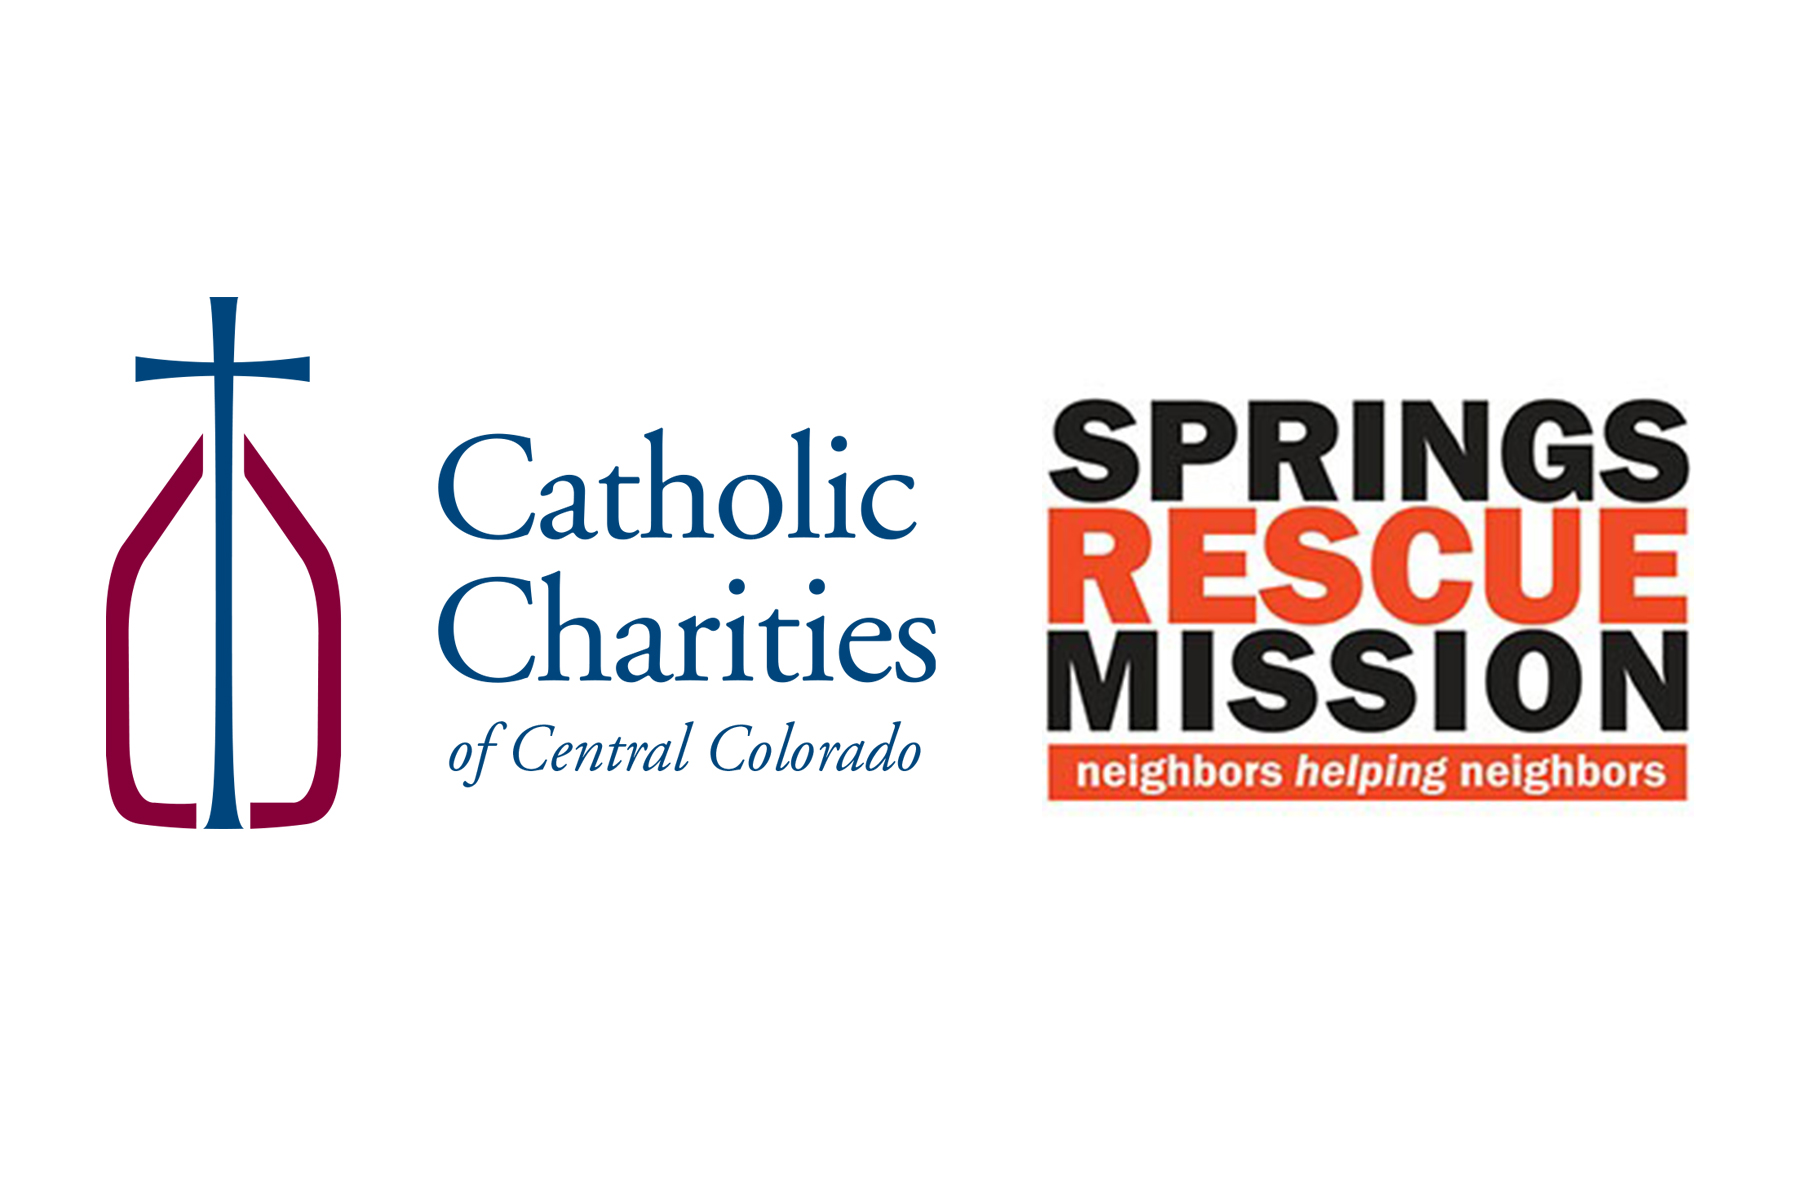 Family Mentor Alliance Moves To Catholic Charities  Catholic Charities of Central Colorado